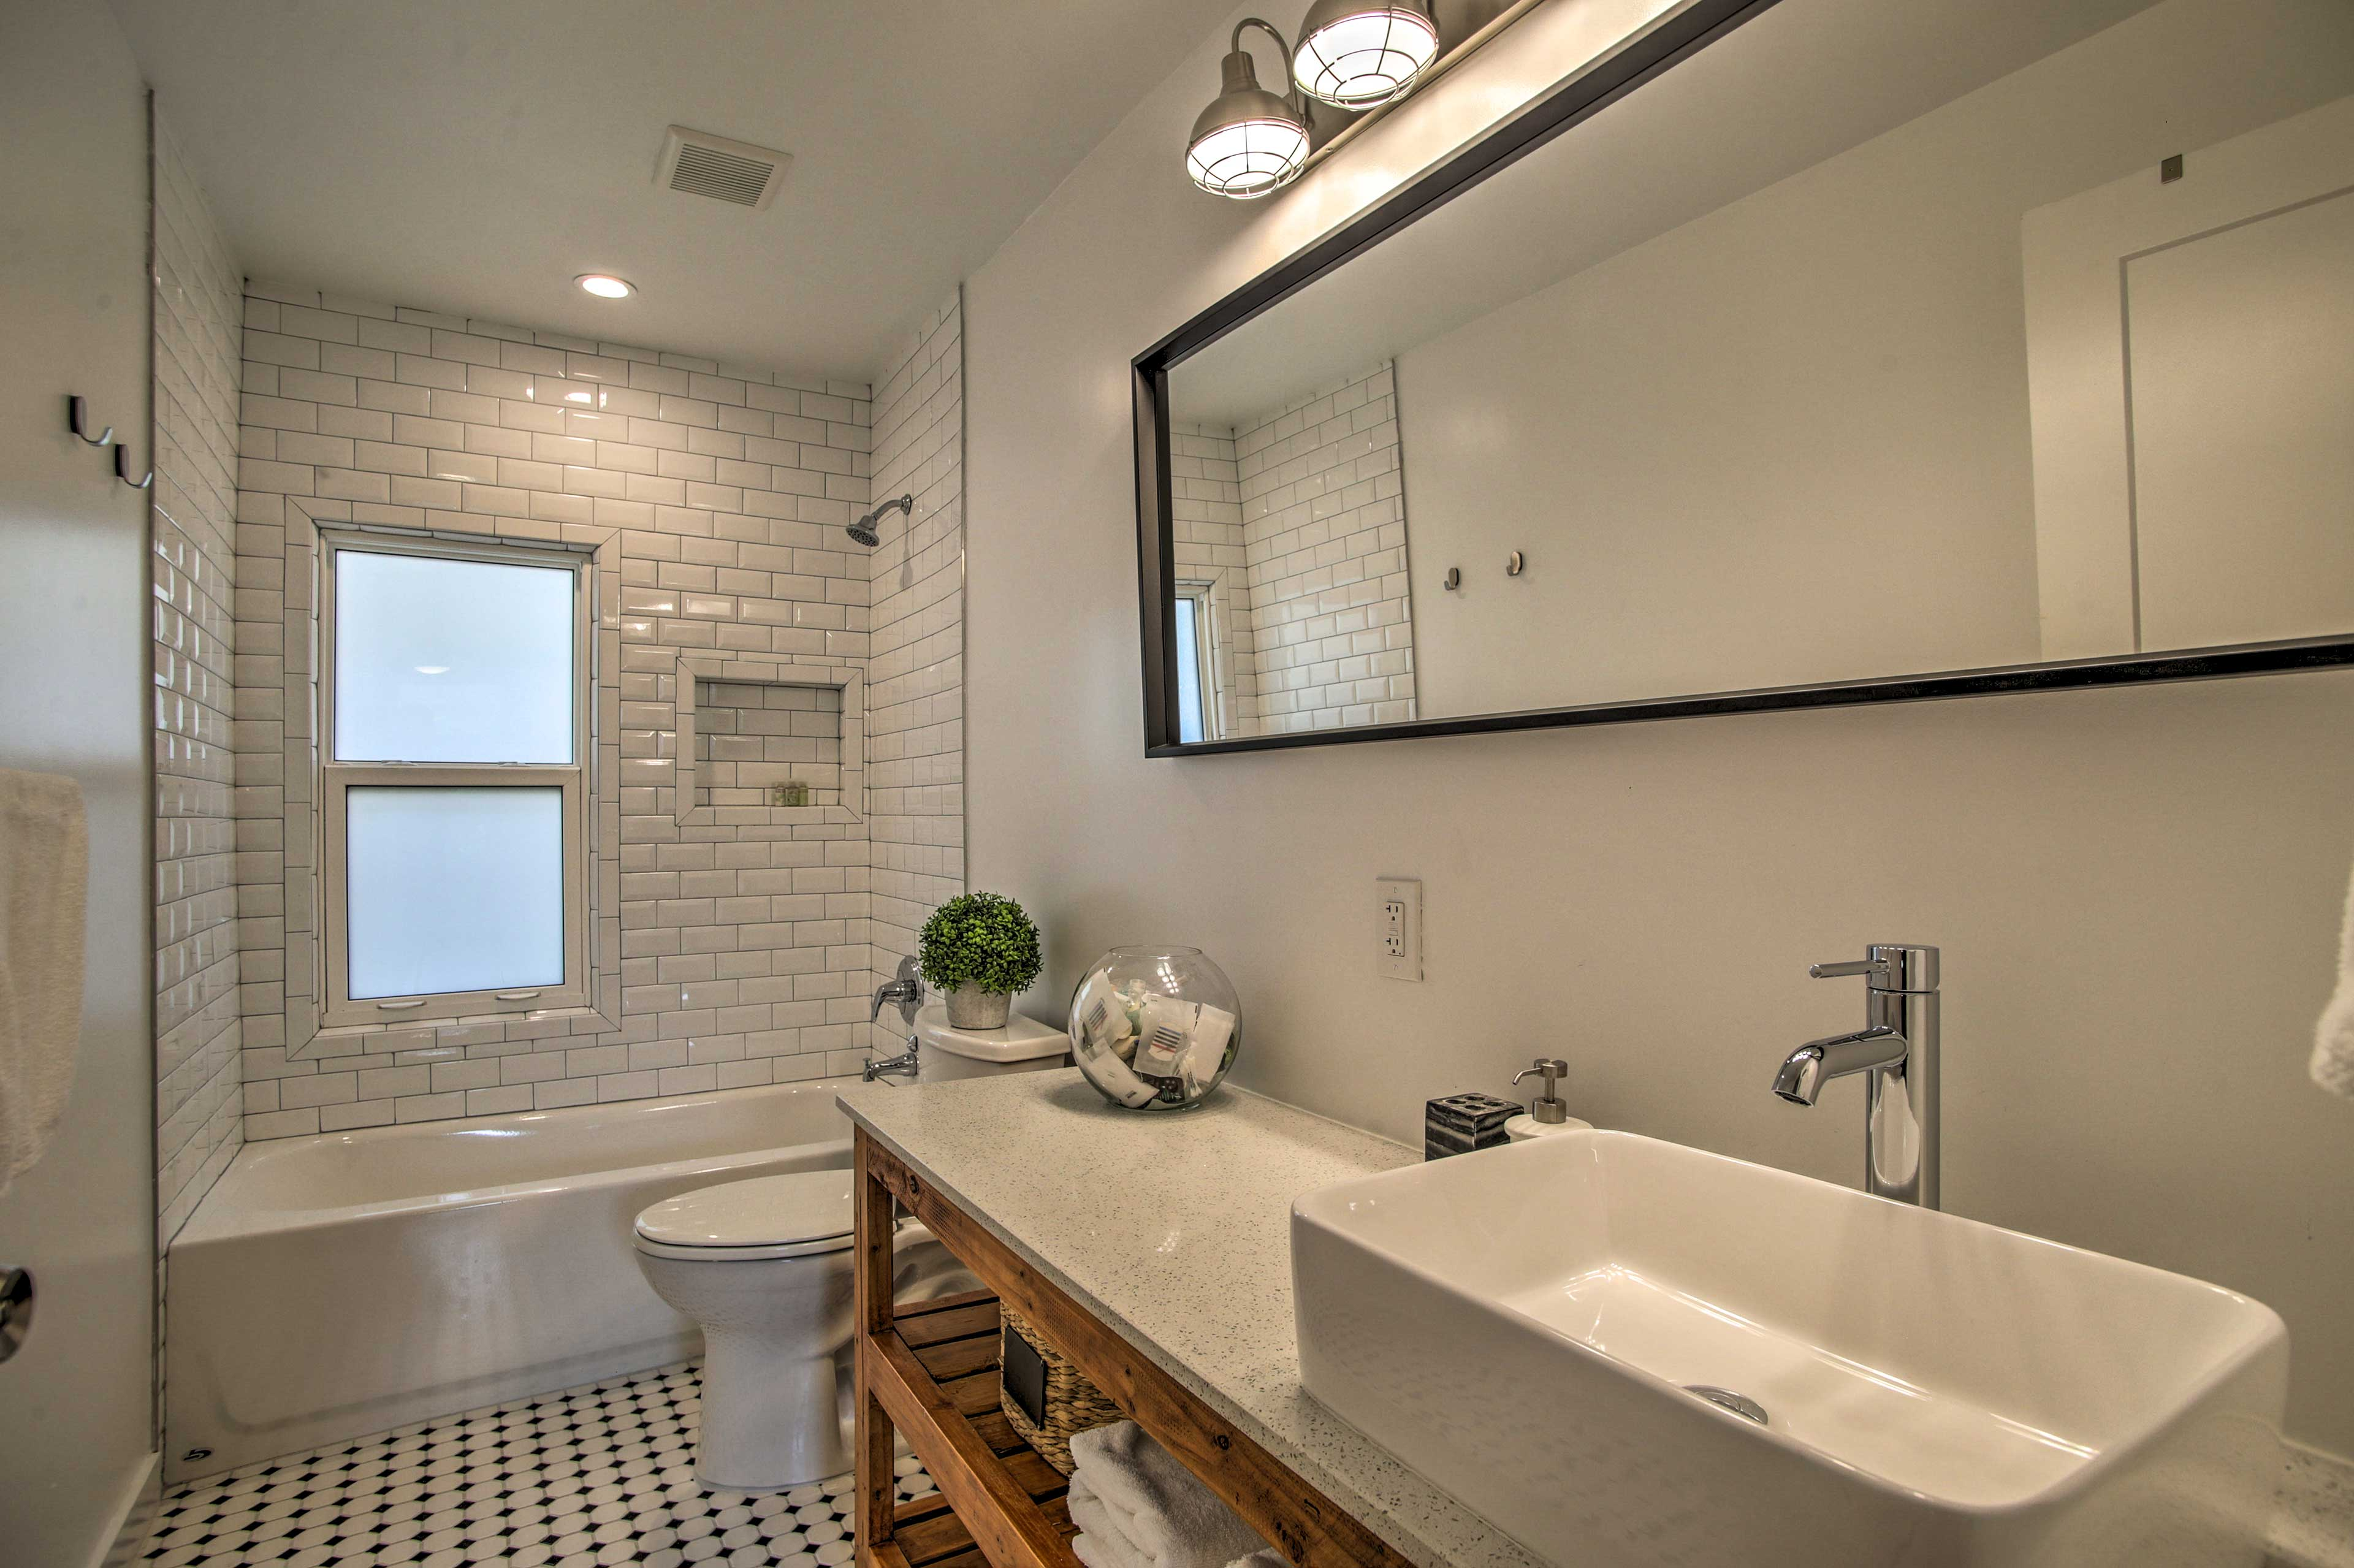 Both bedrooms are connected to full en-suite bathrooms.